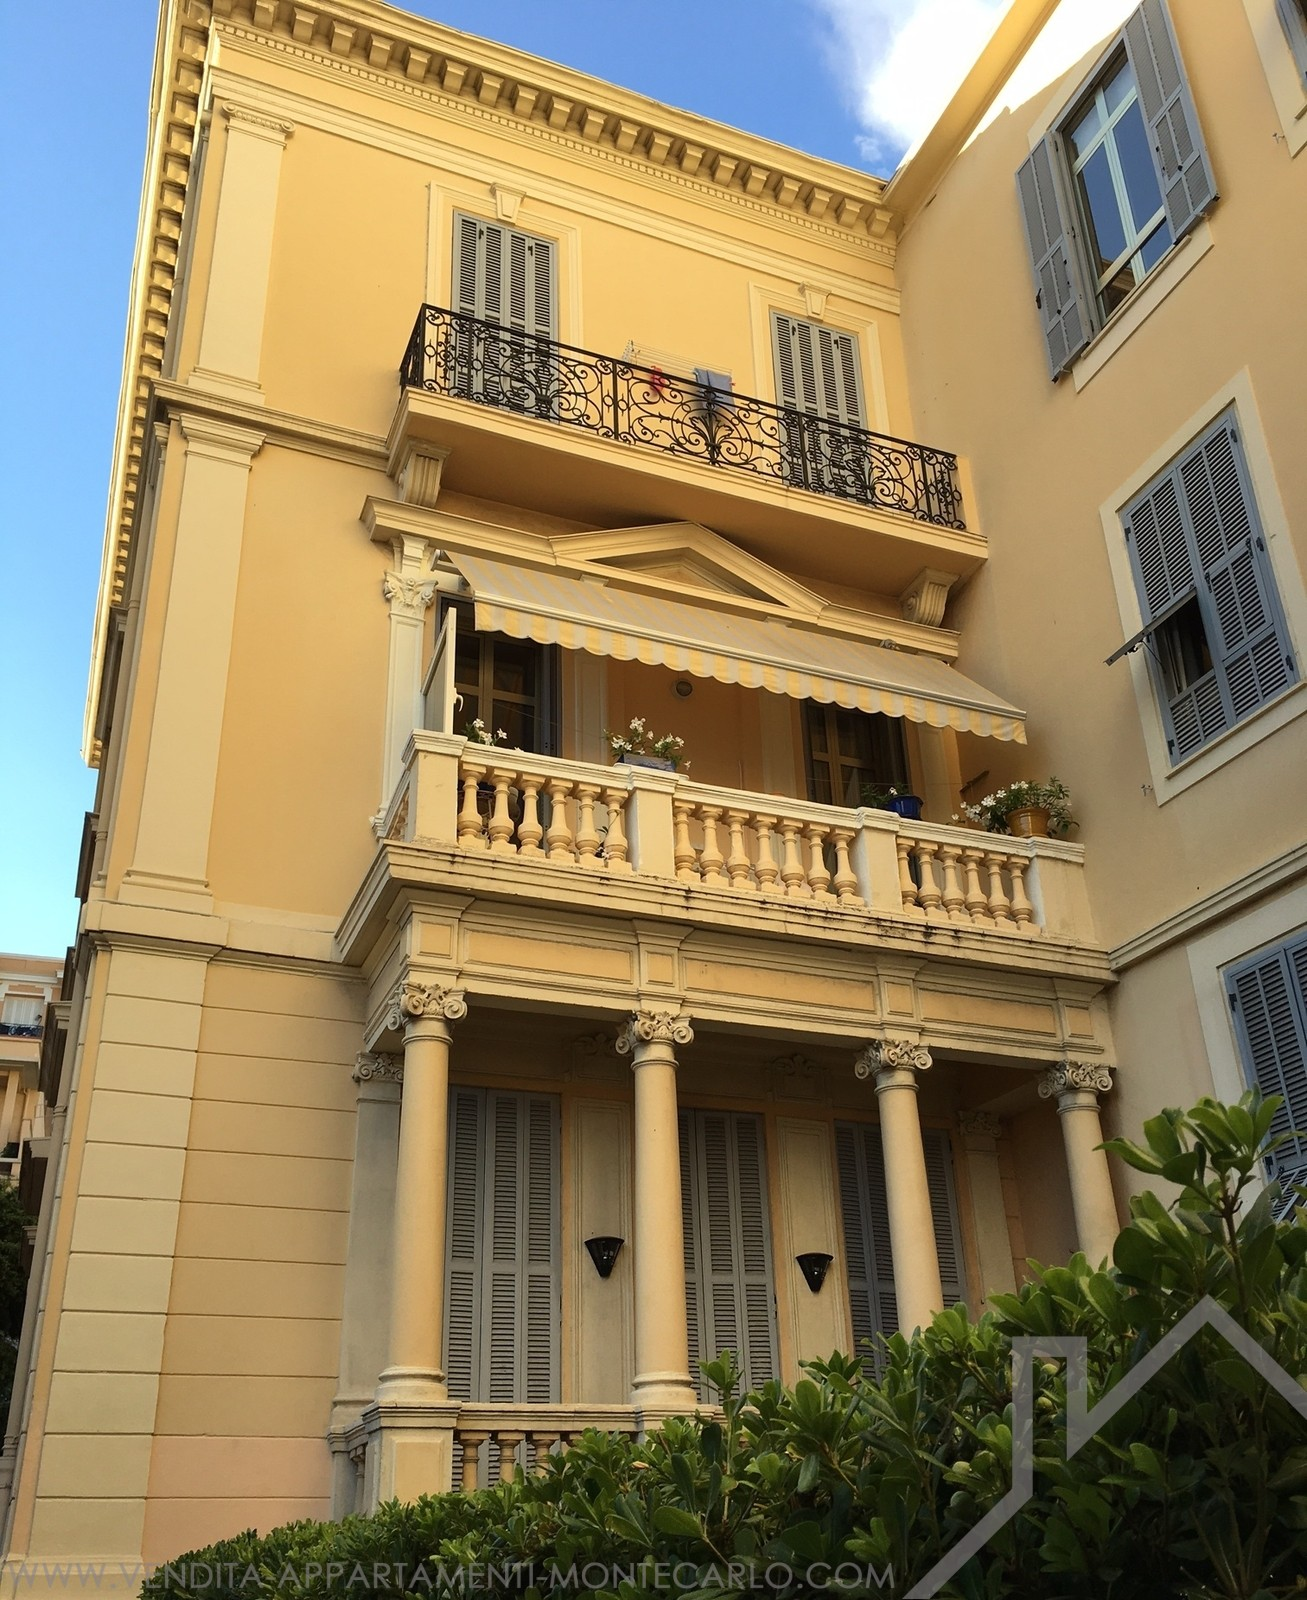 VILLA MILTON - Properties for sale in Monaco